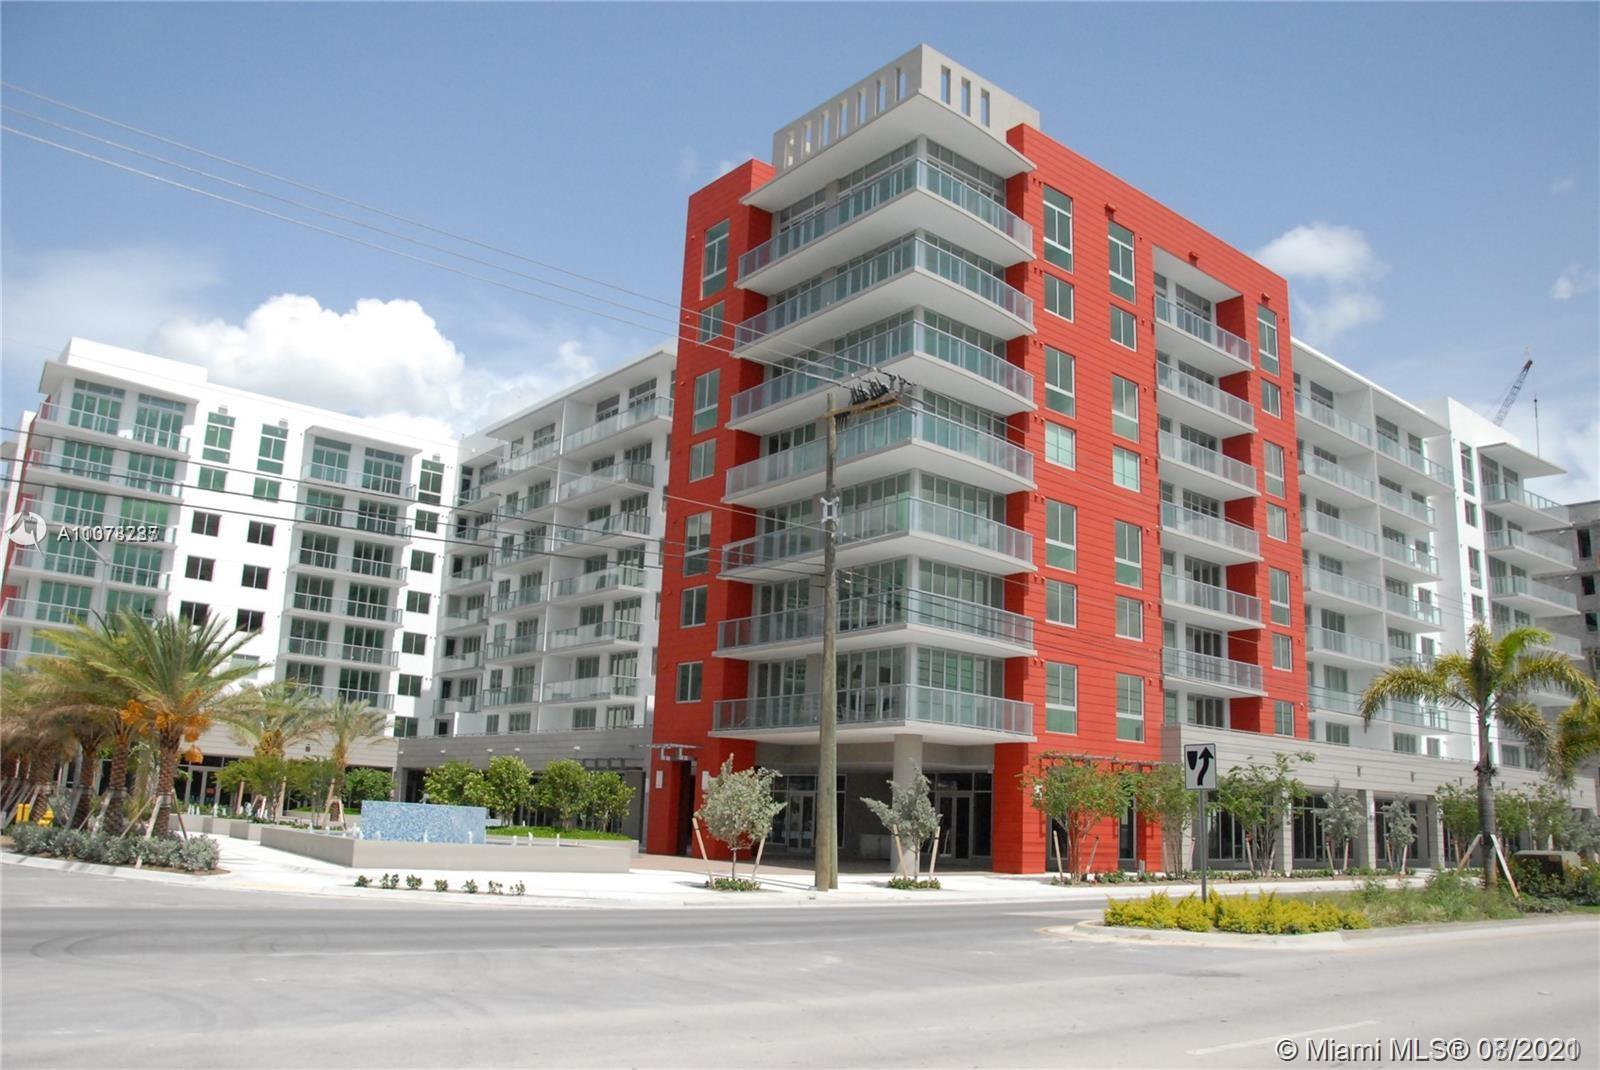 Midtown Doral - Building 2 #615 - 7751 NW 107th Ave #615, Doral, FL 33178